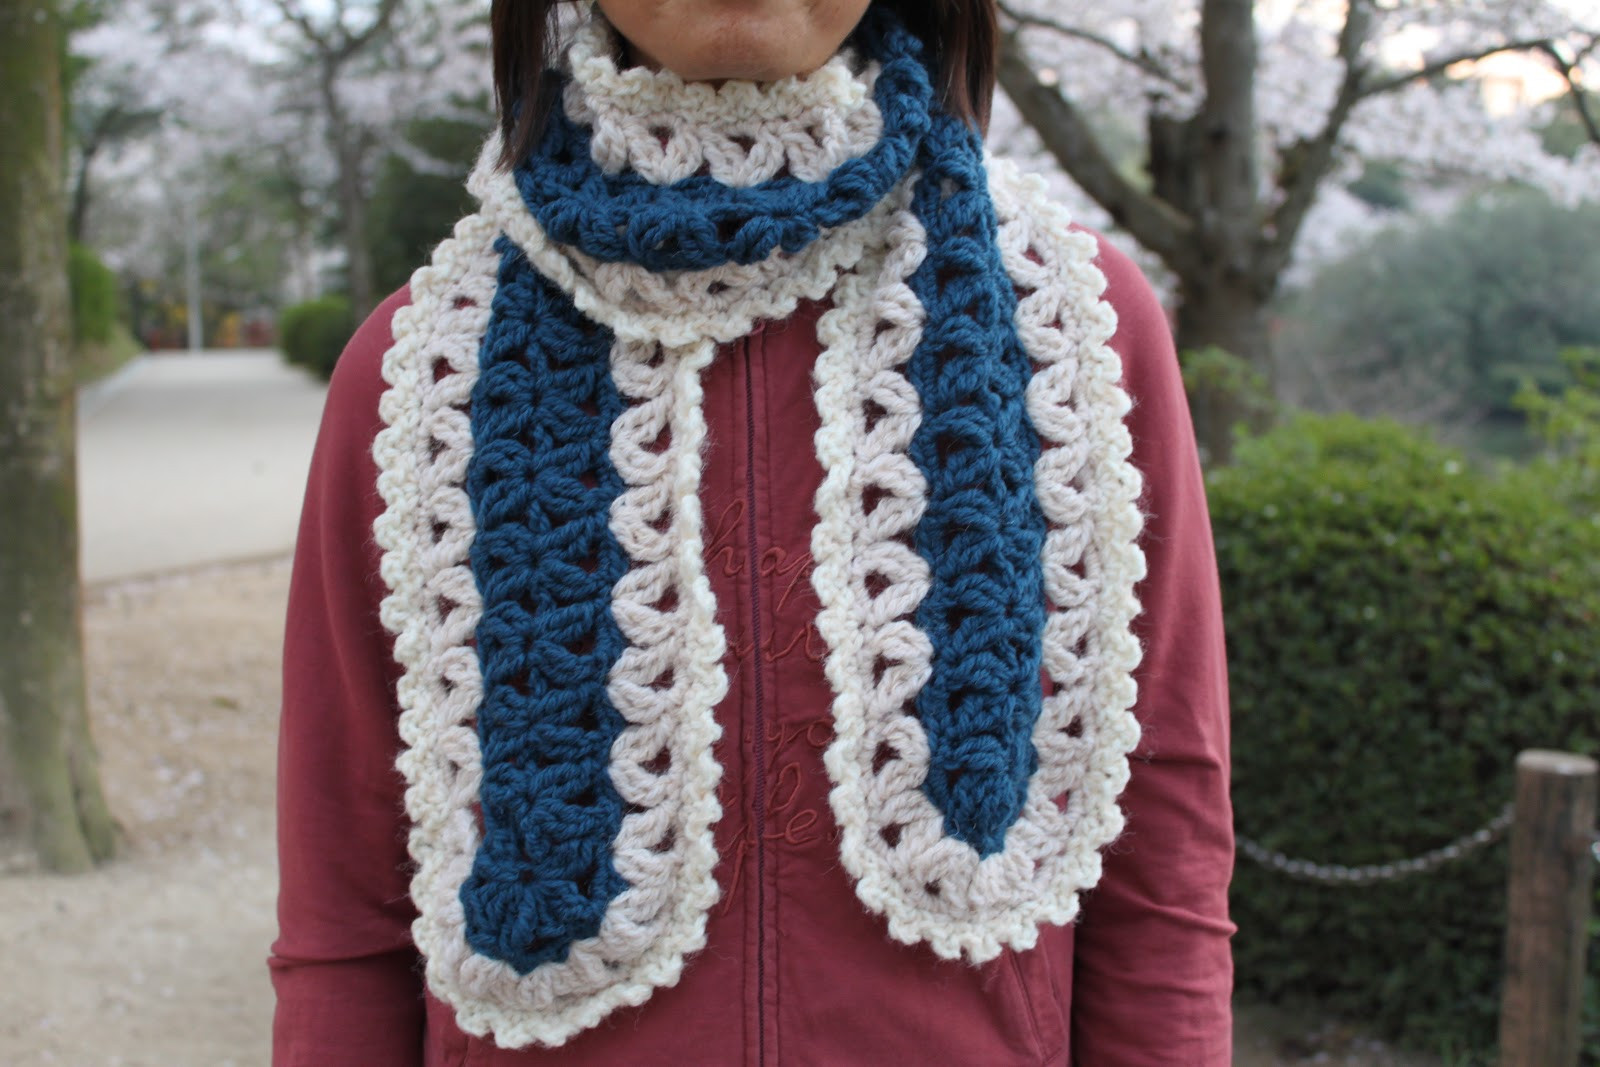 Lovely Casual Crafting Journal Crochet Mile A Minute Scarf Mile A Minute Crochet Of Beautiful 37 Photos Mile A Minute Crochet